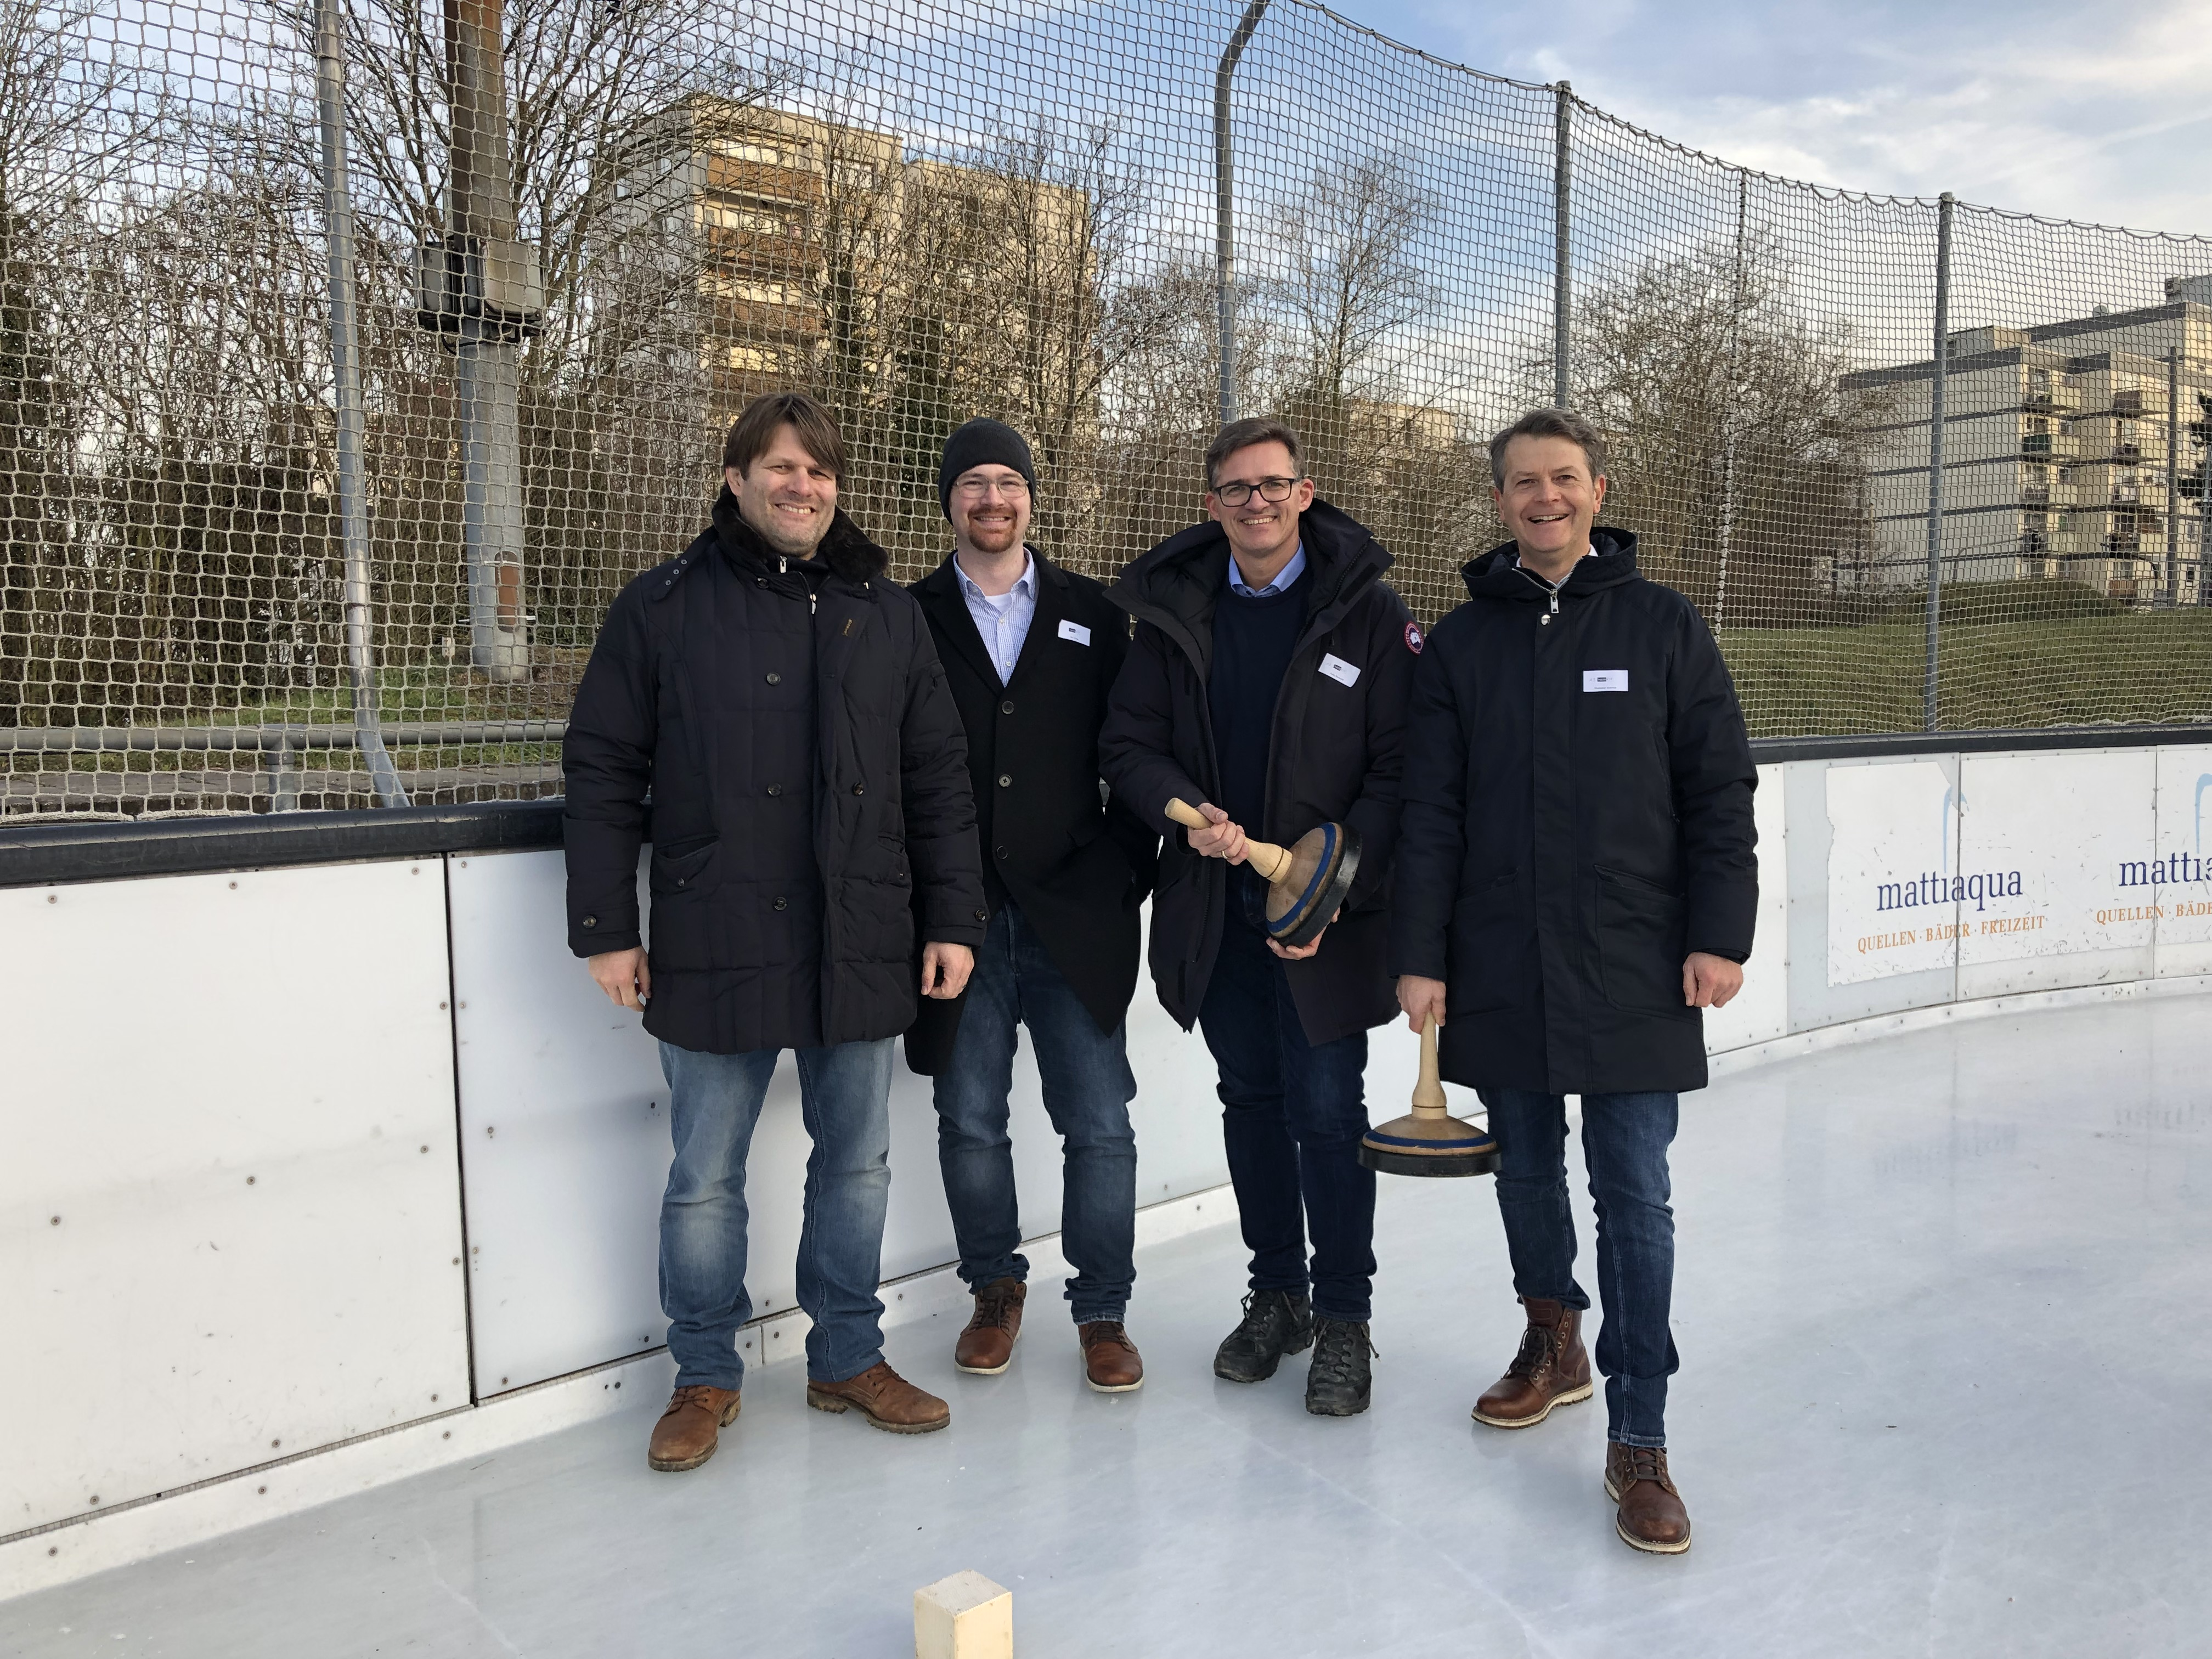 3. Place at the Ice stock Event